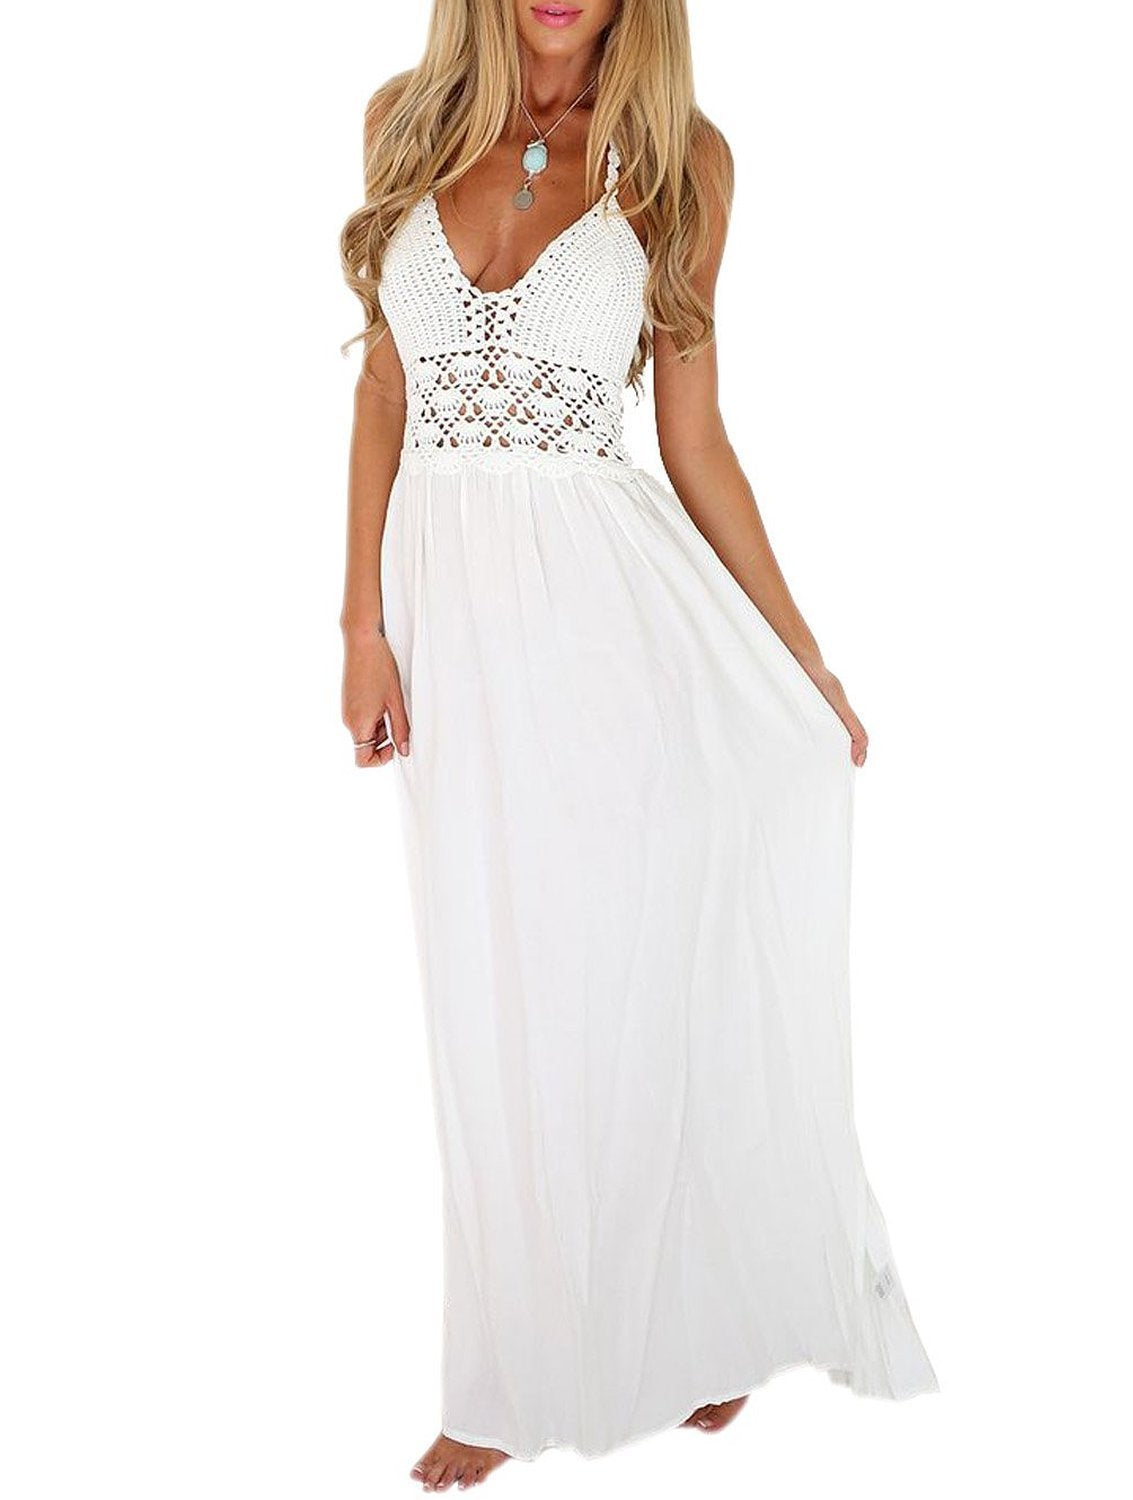 LILBETTER Women's Beach Crochet Backless Bohemian Halter Maxi Long Dress (XL, White) - wiihuu